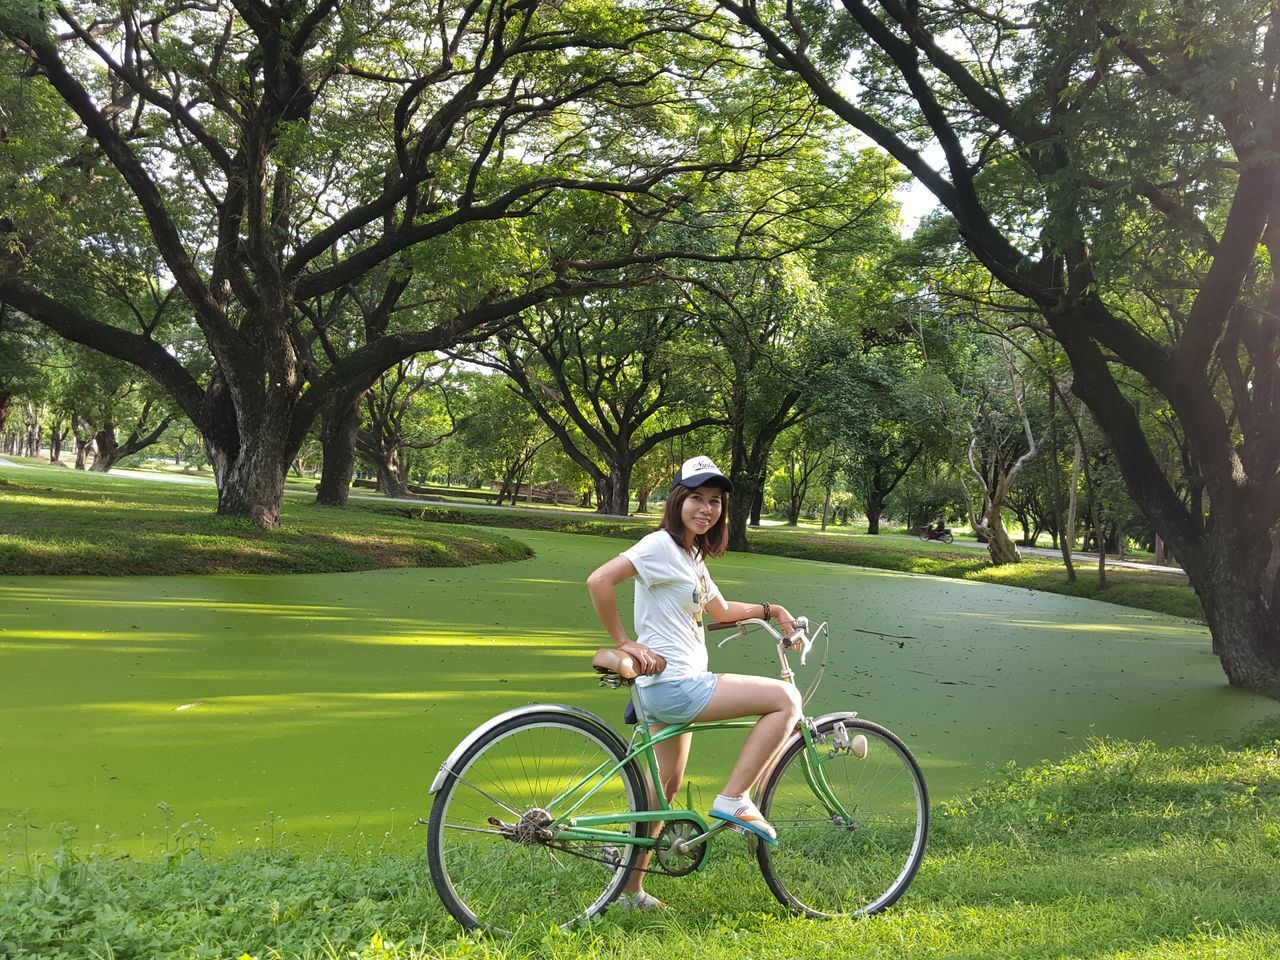 bicycle, tree, grass, transportation, smiling, cycling, looking at camera, happiness, casual clothing, one person, day, full length, outdoors, riding, real people, leisure activity, park - man made space, green color, road, lifestyles, nature, cheerful, portrait, growth, young adult, people